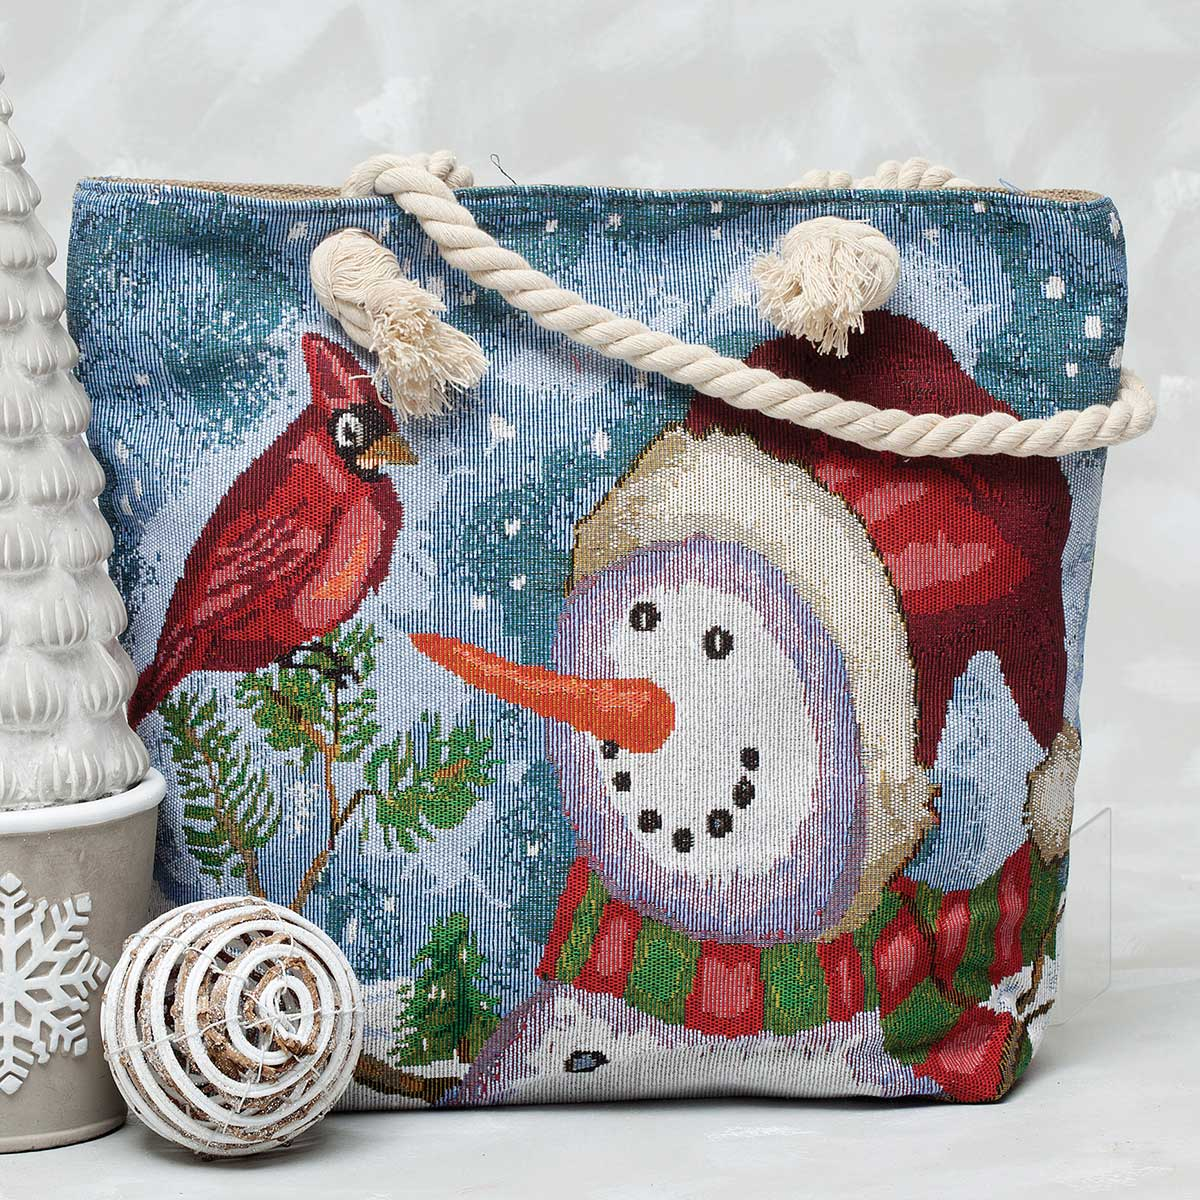 "Snowman with Cardinal Tapestry Bag 17.5""x5""x14"""